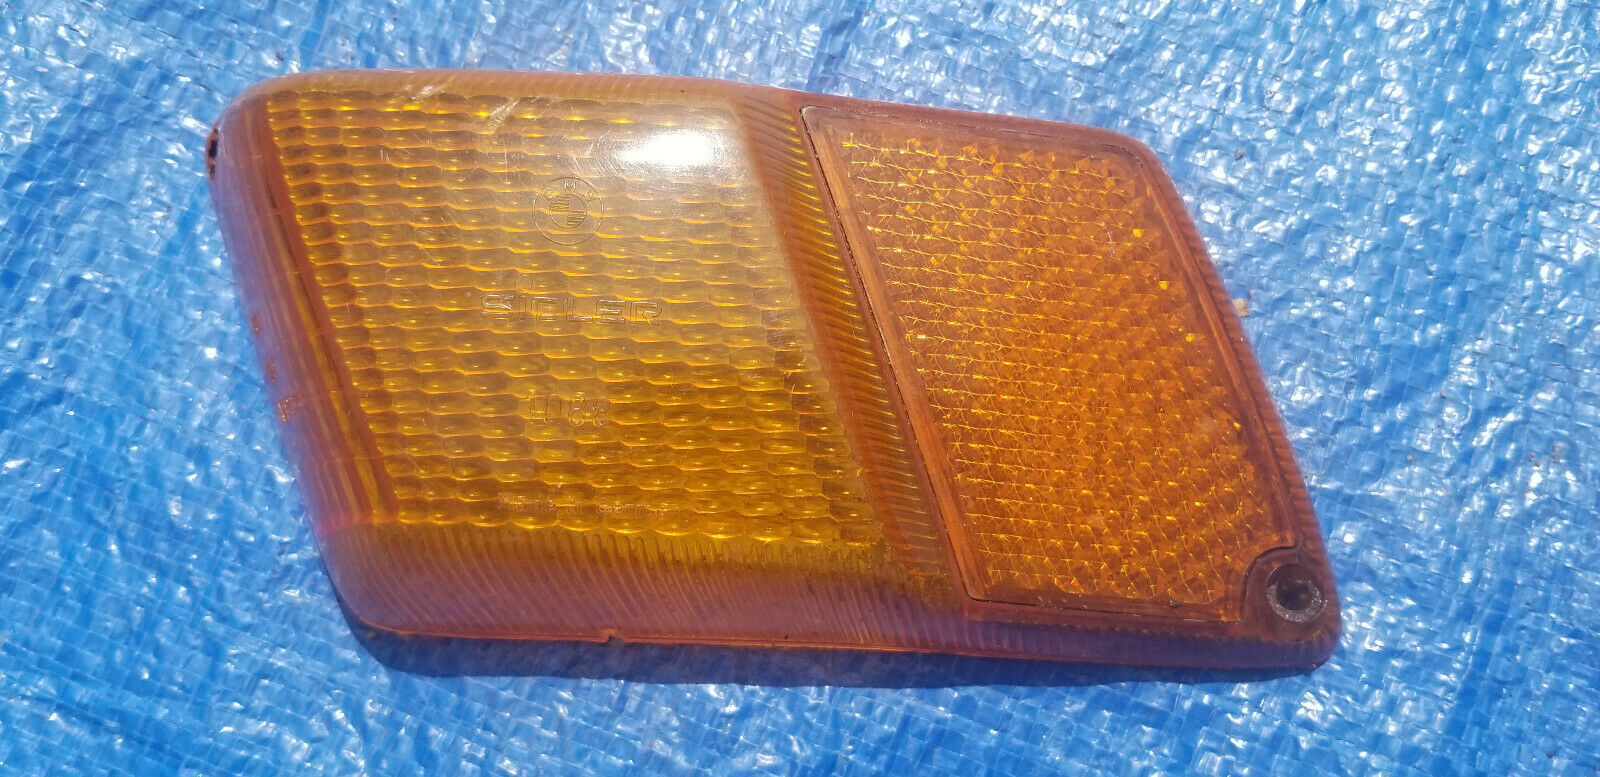 1976 BMW 530I RH Passenger Side Marker Lamp Lens. (fits on fender) Used